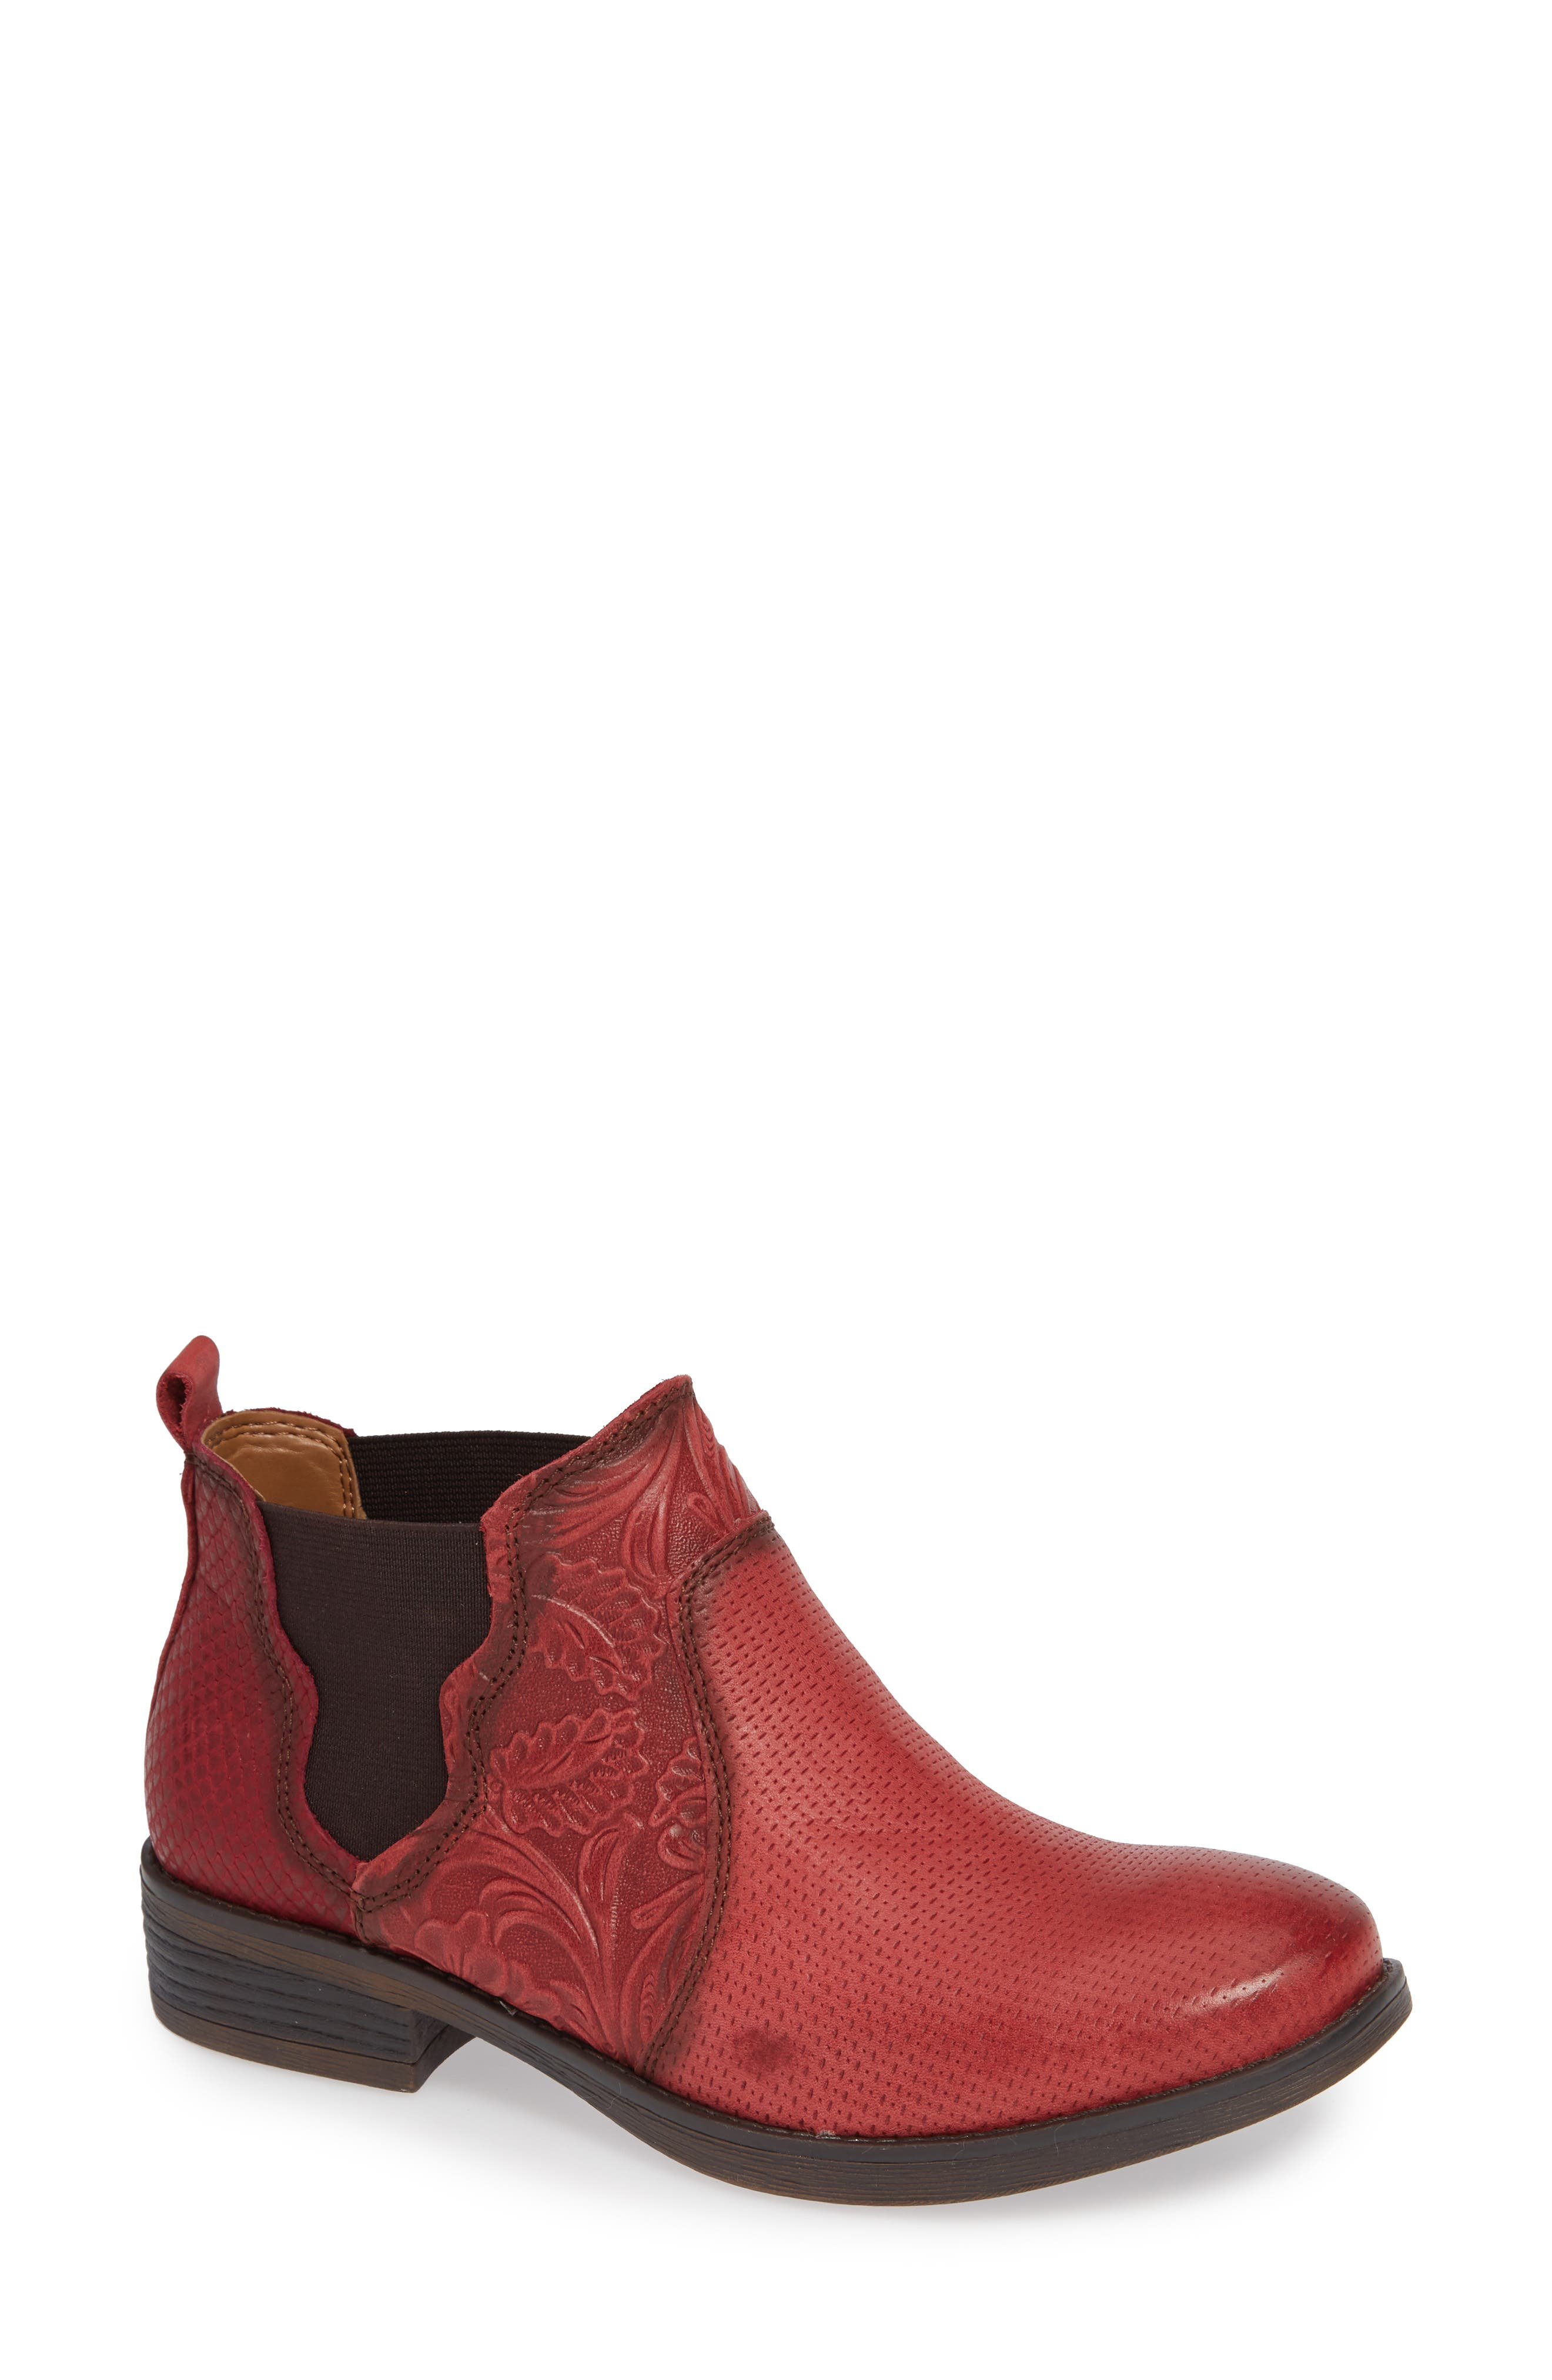 Comfortiva Tenny Bootie, Red